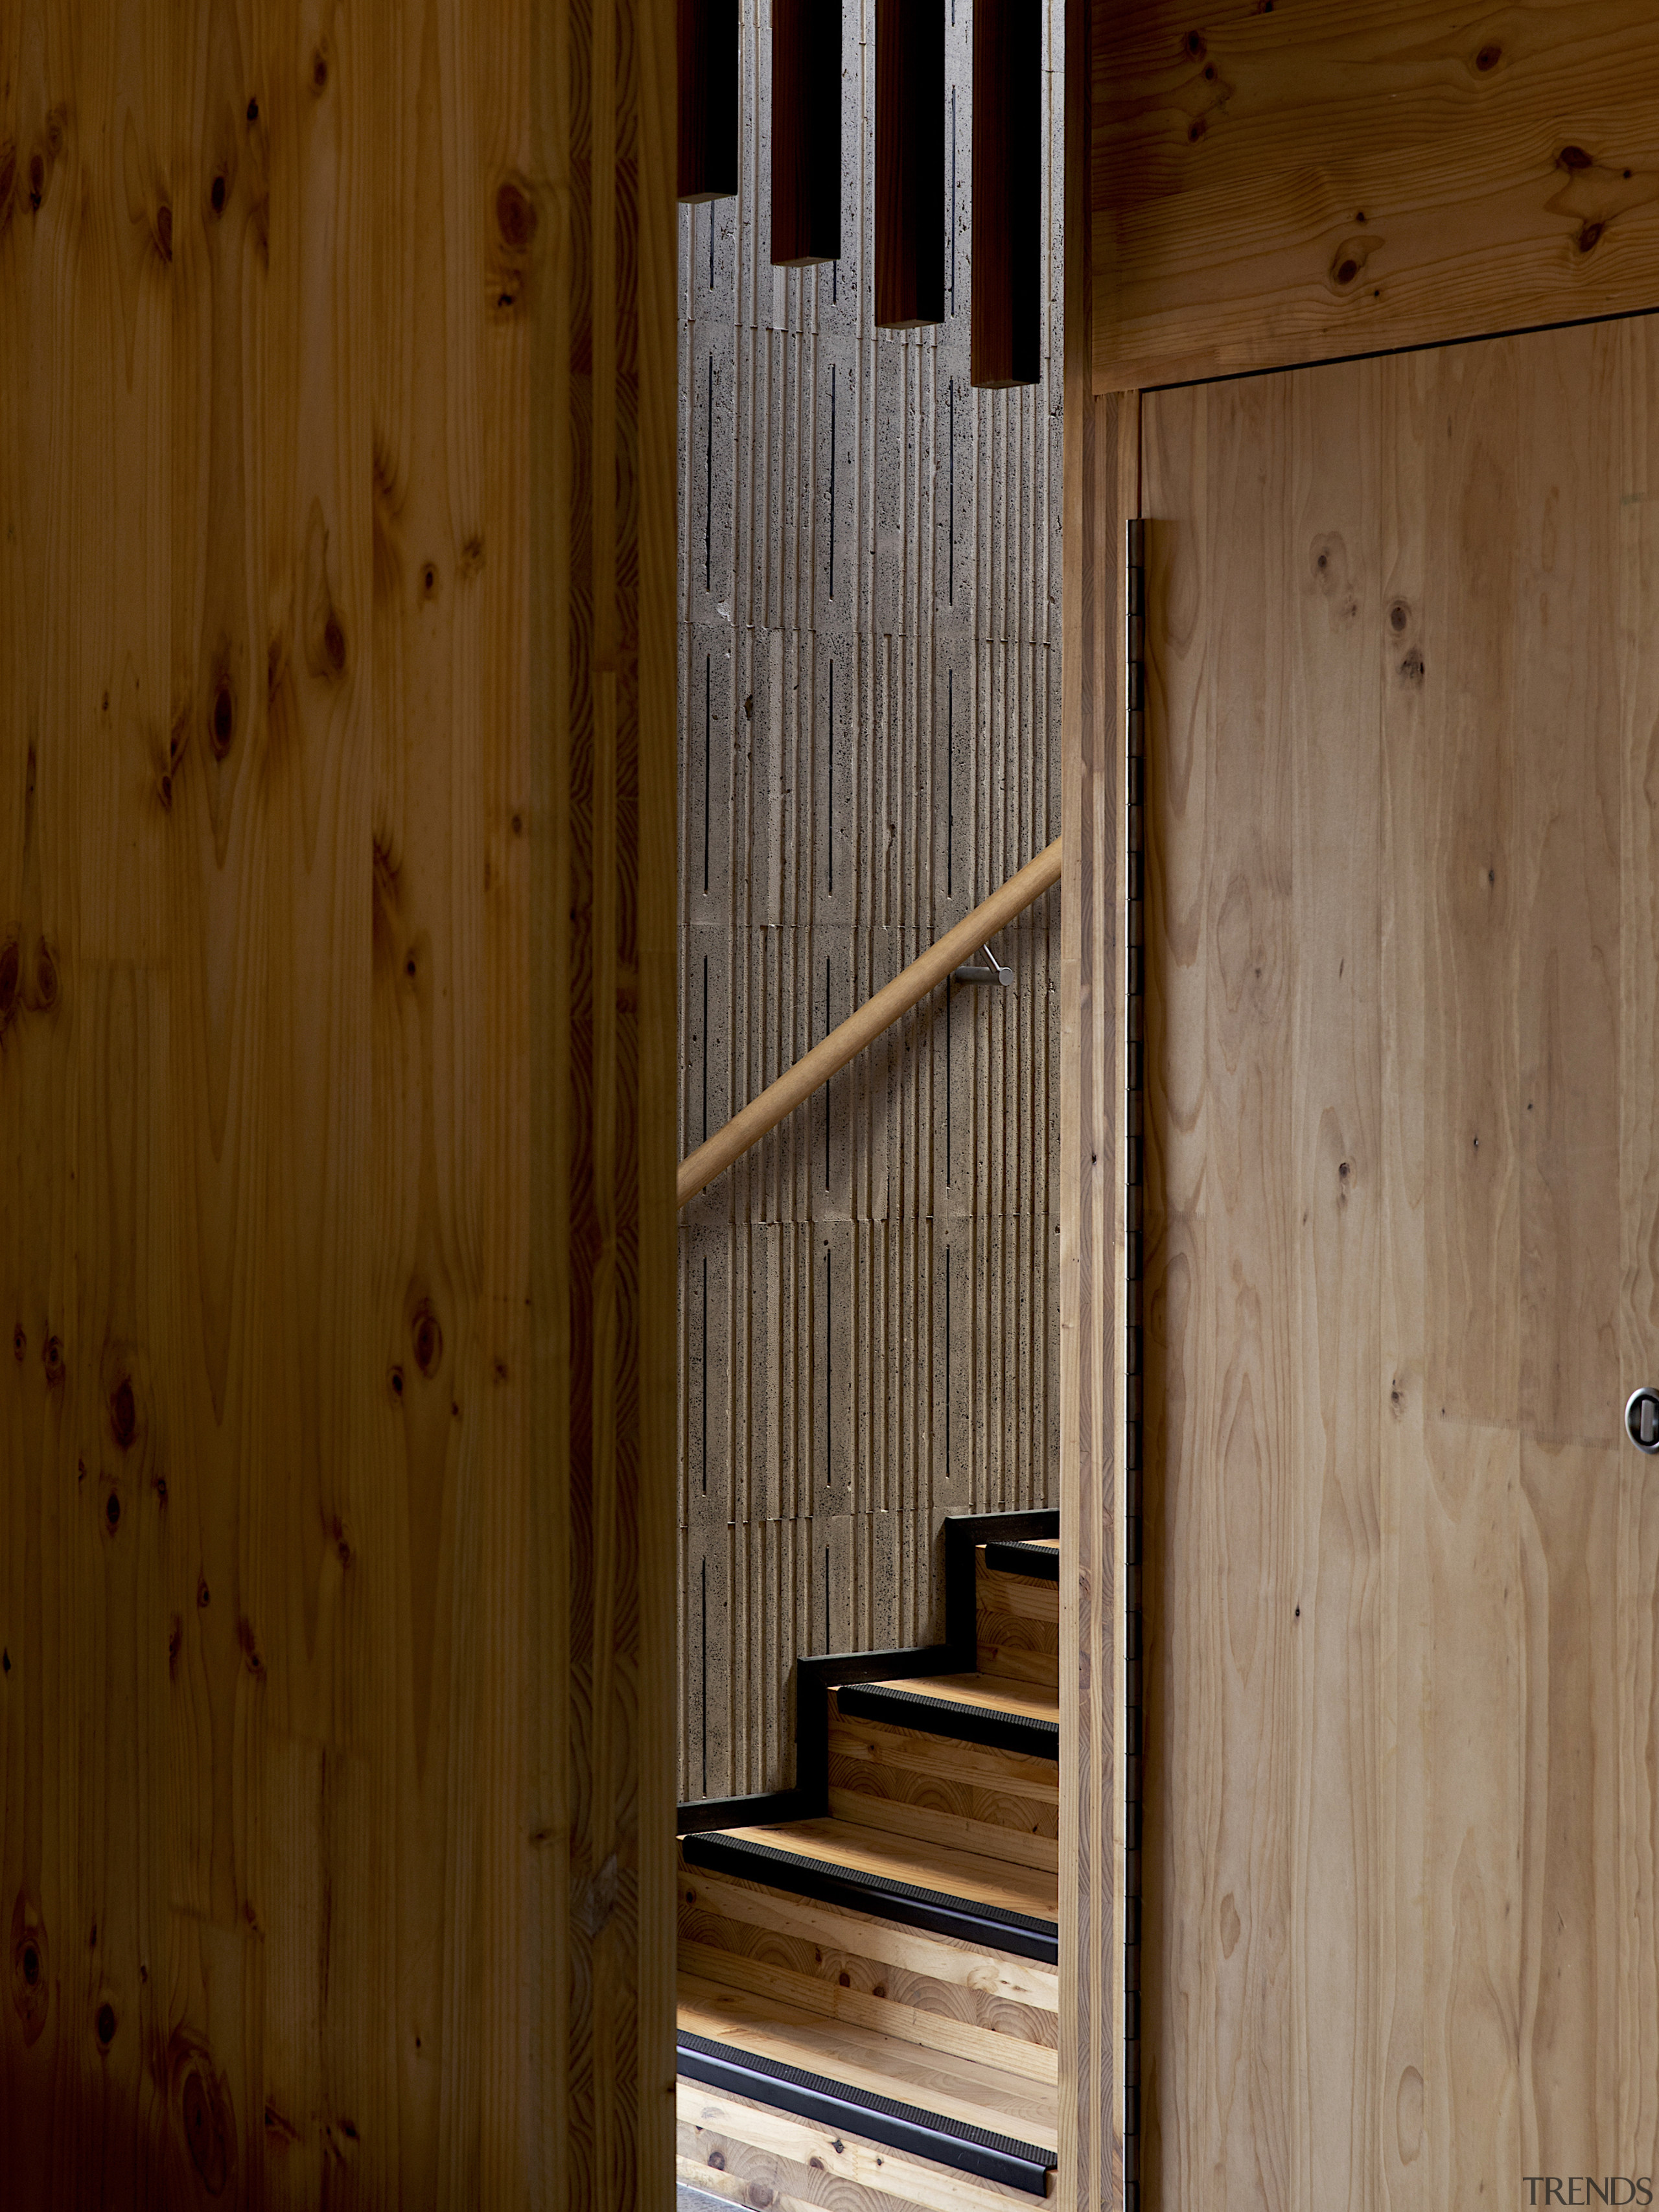 The stairwell is wrapped in concrete finished with brown